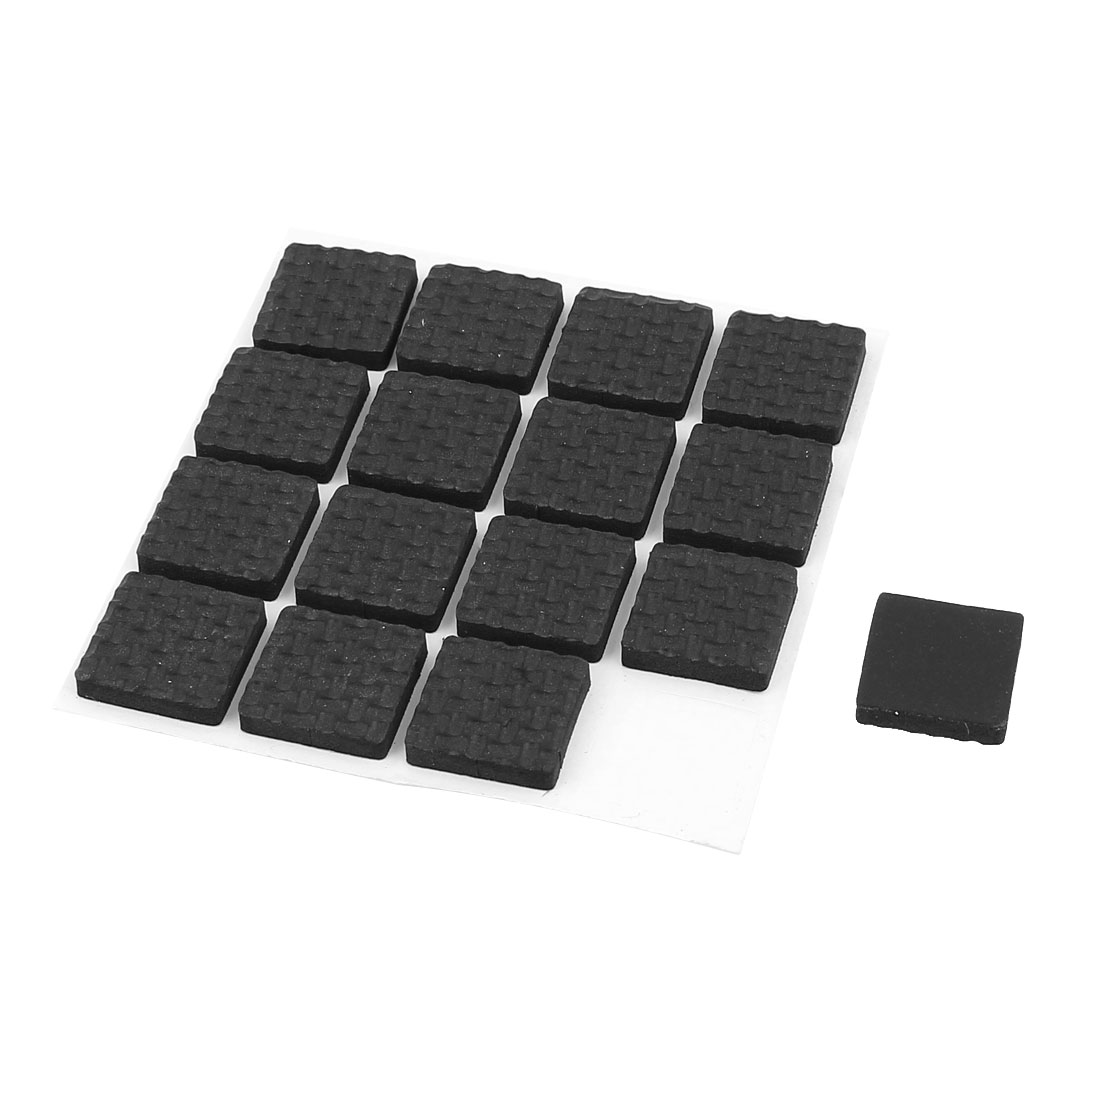 Furniture Feet Antiskid Adhesive Protection Pads Felt Floor Protector Black 16 Pcs